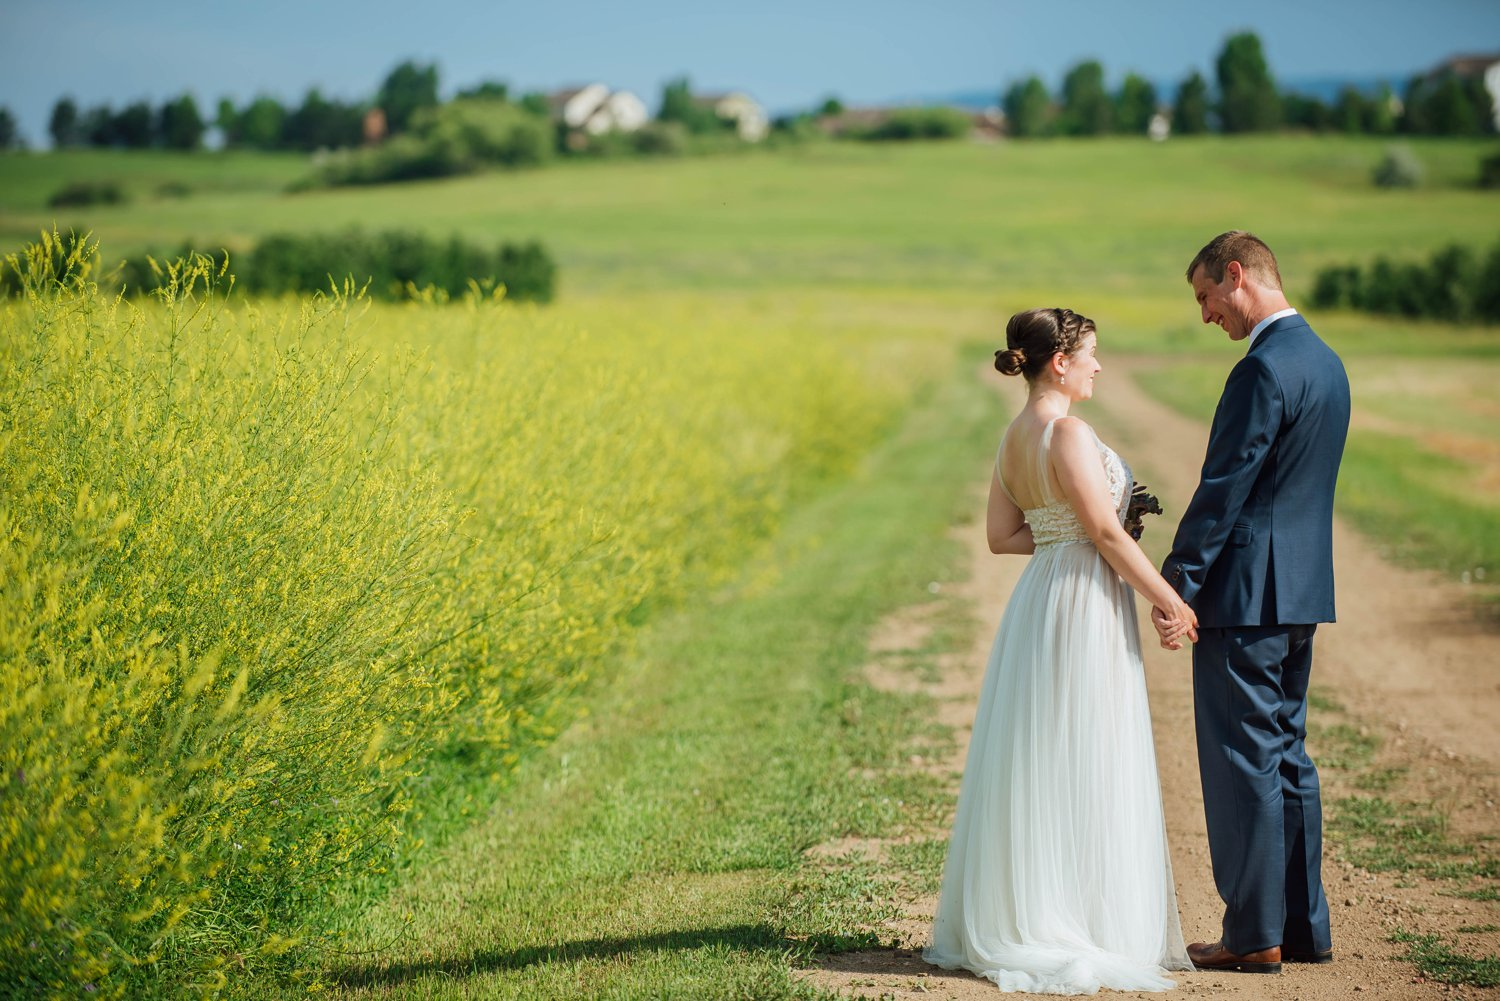 I love this dirt road that runs parallel to the field with the tall grass for wedding photos!Photo by Maddie Mae Photography